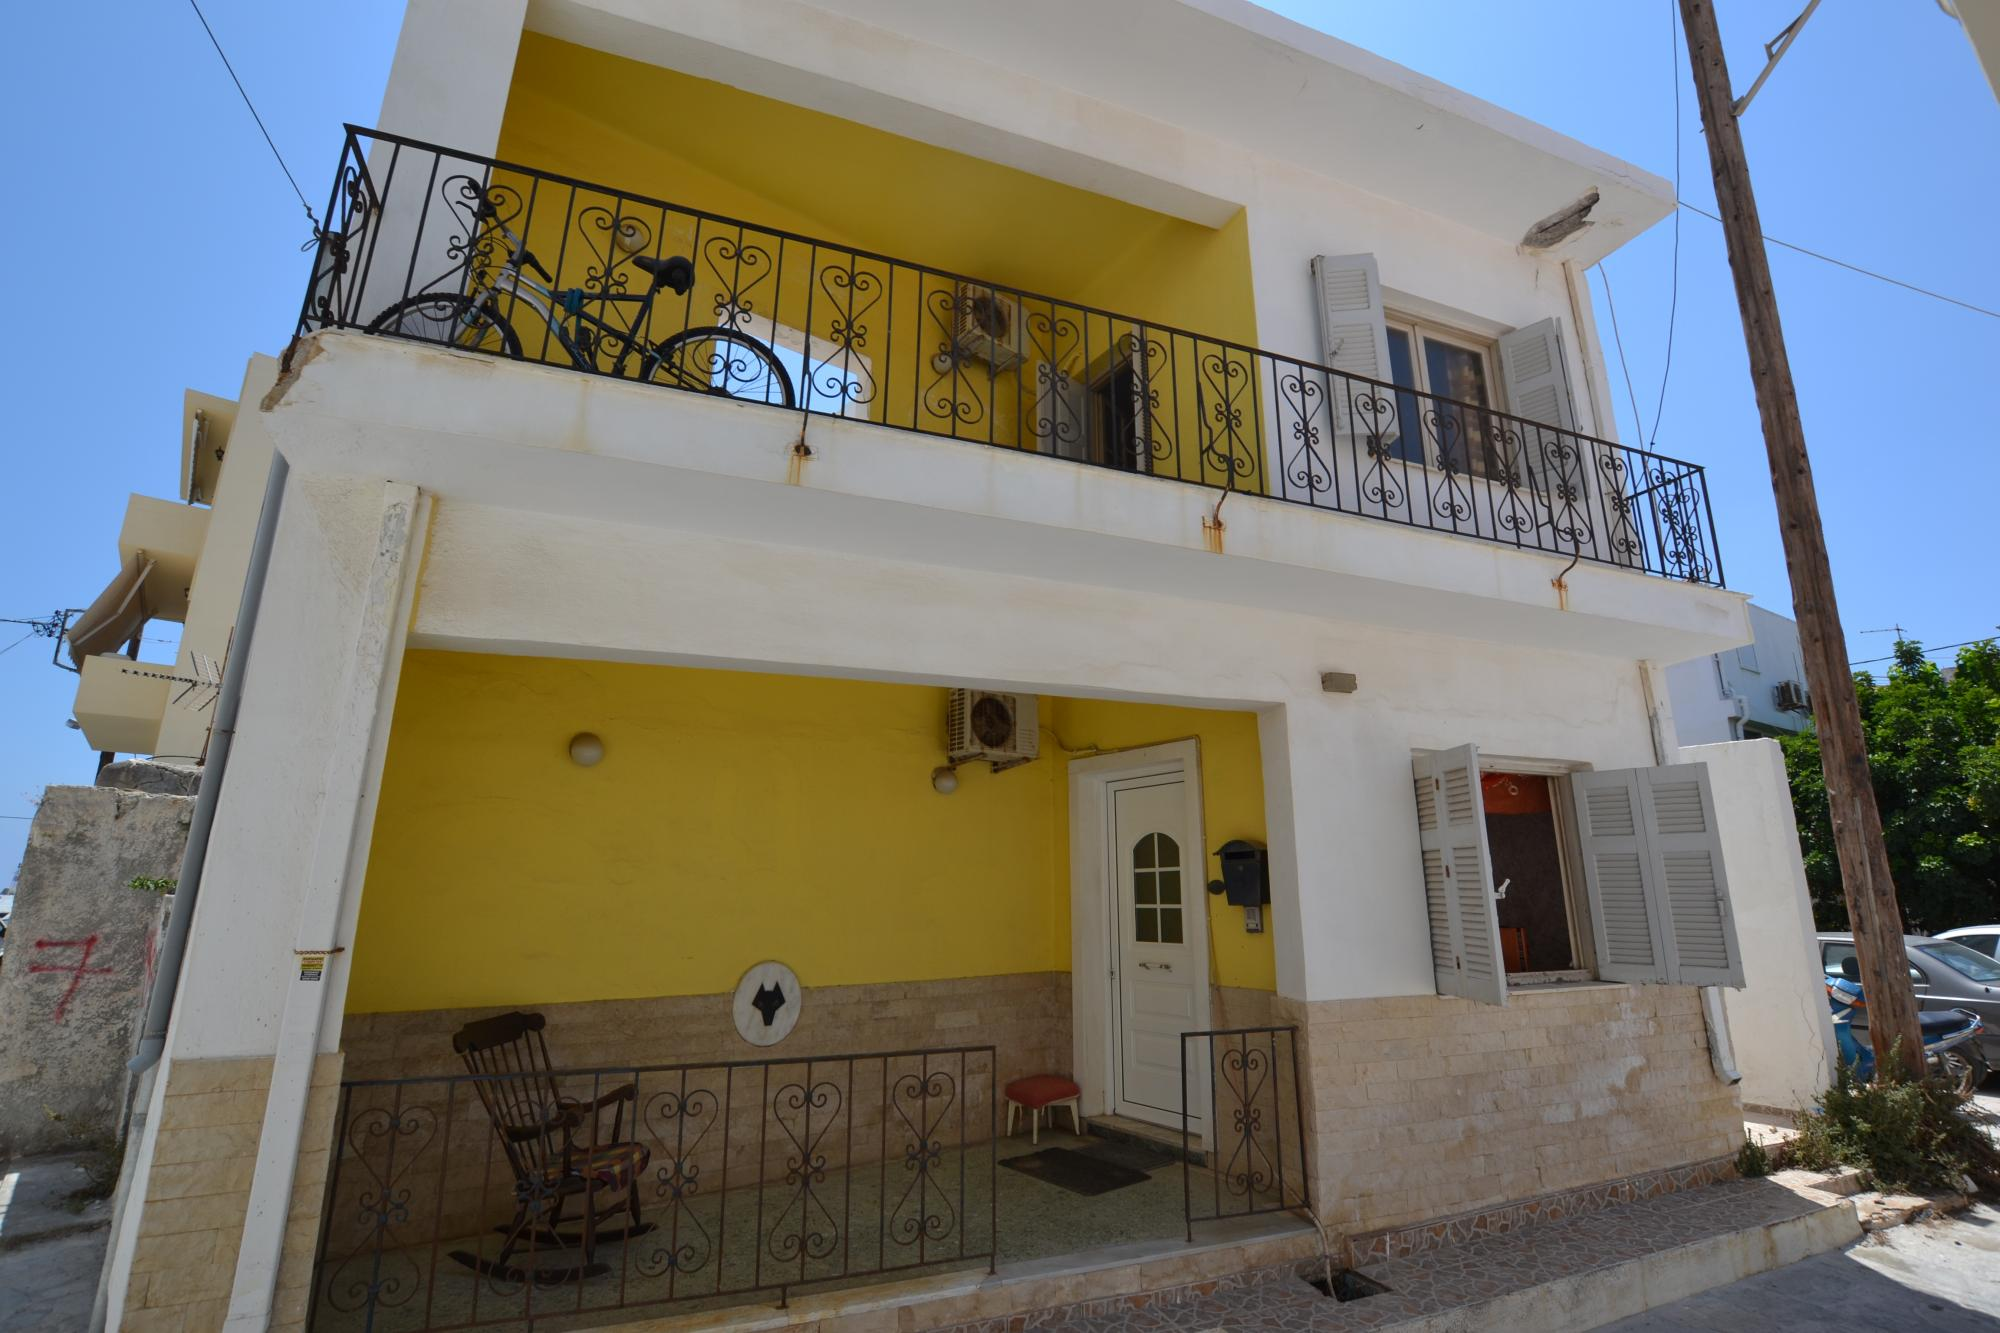 3 bedroom town house, 30 meters from the beach. Ierapetra